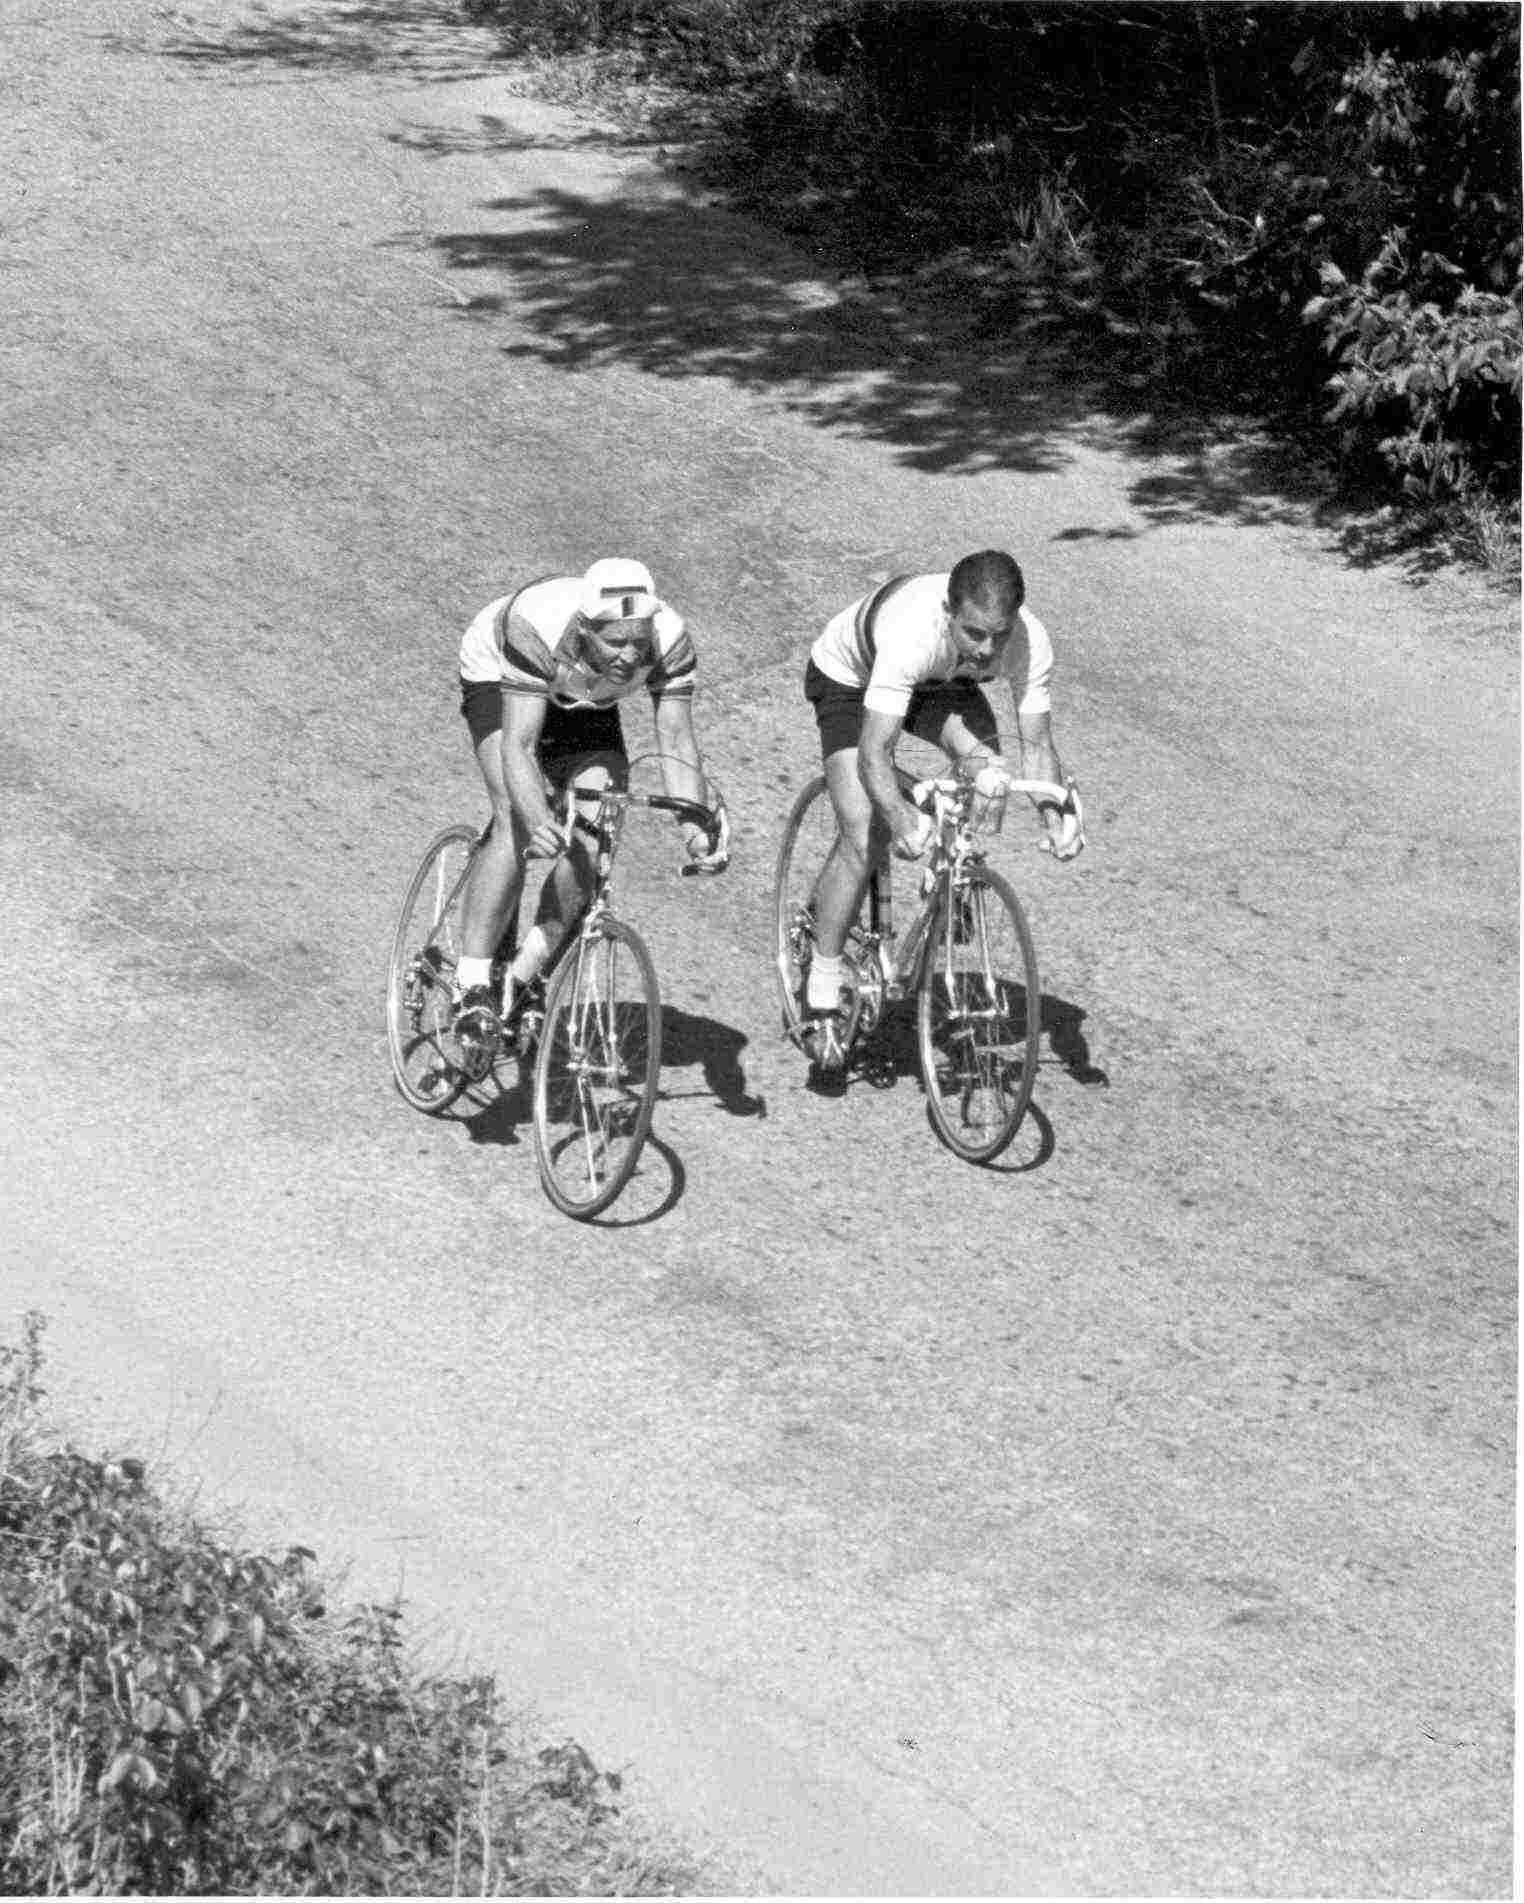 Pete Locke and Jan Hyde - Pose for publication Memorial Day Race circa 1964. Photo courtesy Jan Hyde